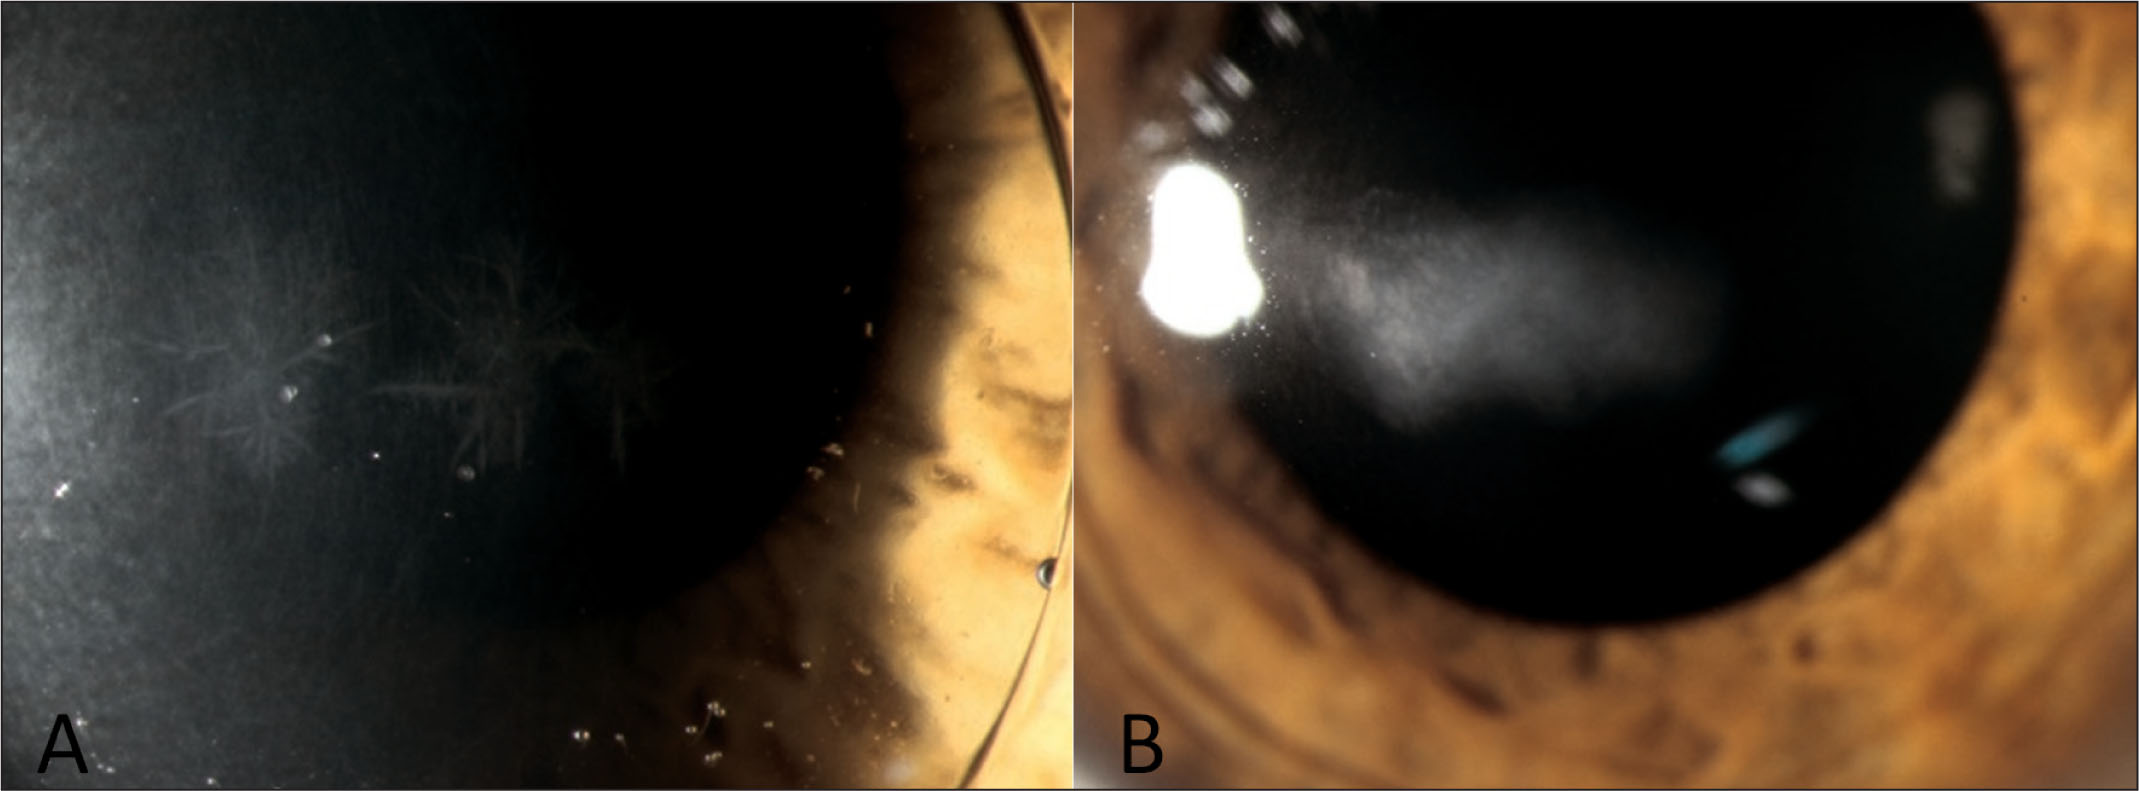 (A) Infectious crystalline keratopathy in a 16-year-old patient 3 weeks after corneal cross-linking; when presenting, the patient was already wearing a rigid gas-permeable contact lens on the treated eye. (B) Central stromal scarring 18 months later in the same patient.